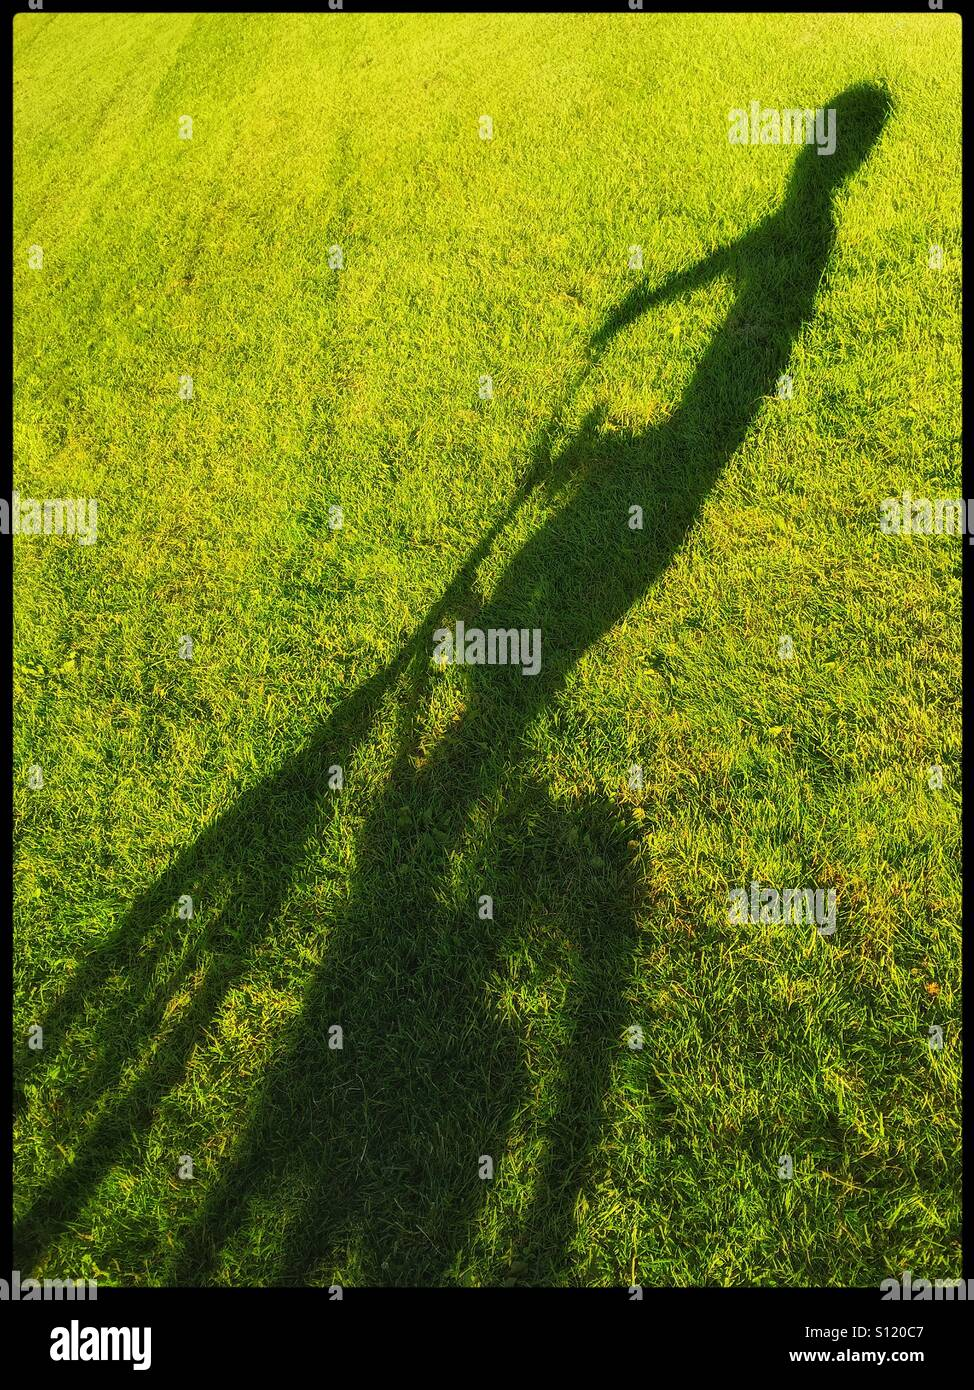 The long shadow of a 6 year old boy on his bicycle in an open grass area. A picture with area for copy. Photo Credit - Stock Image